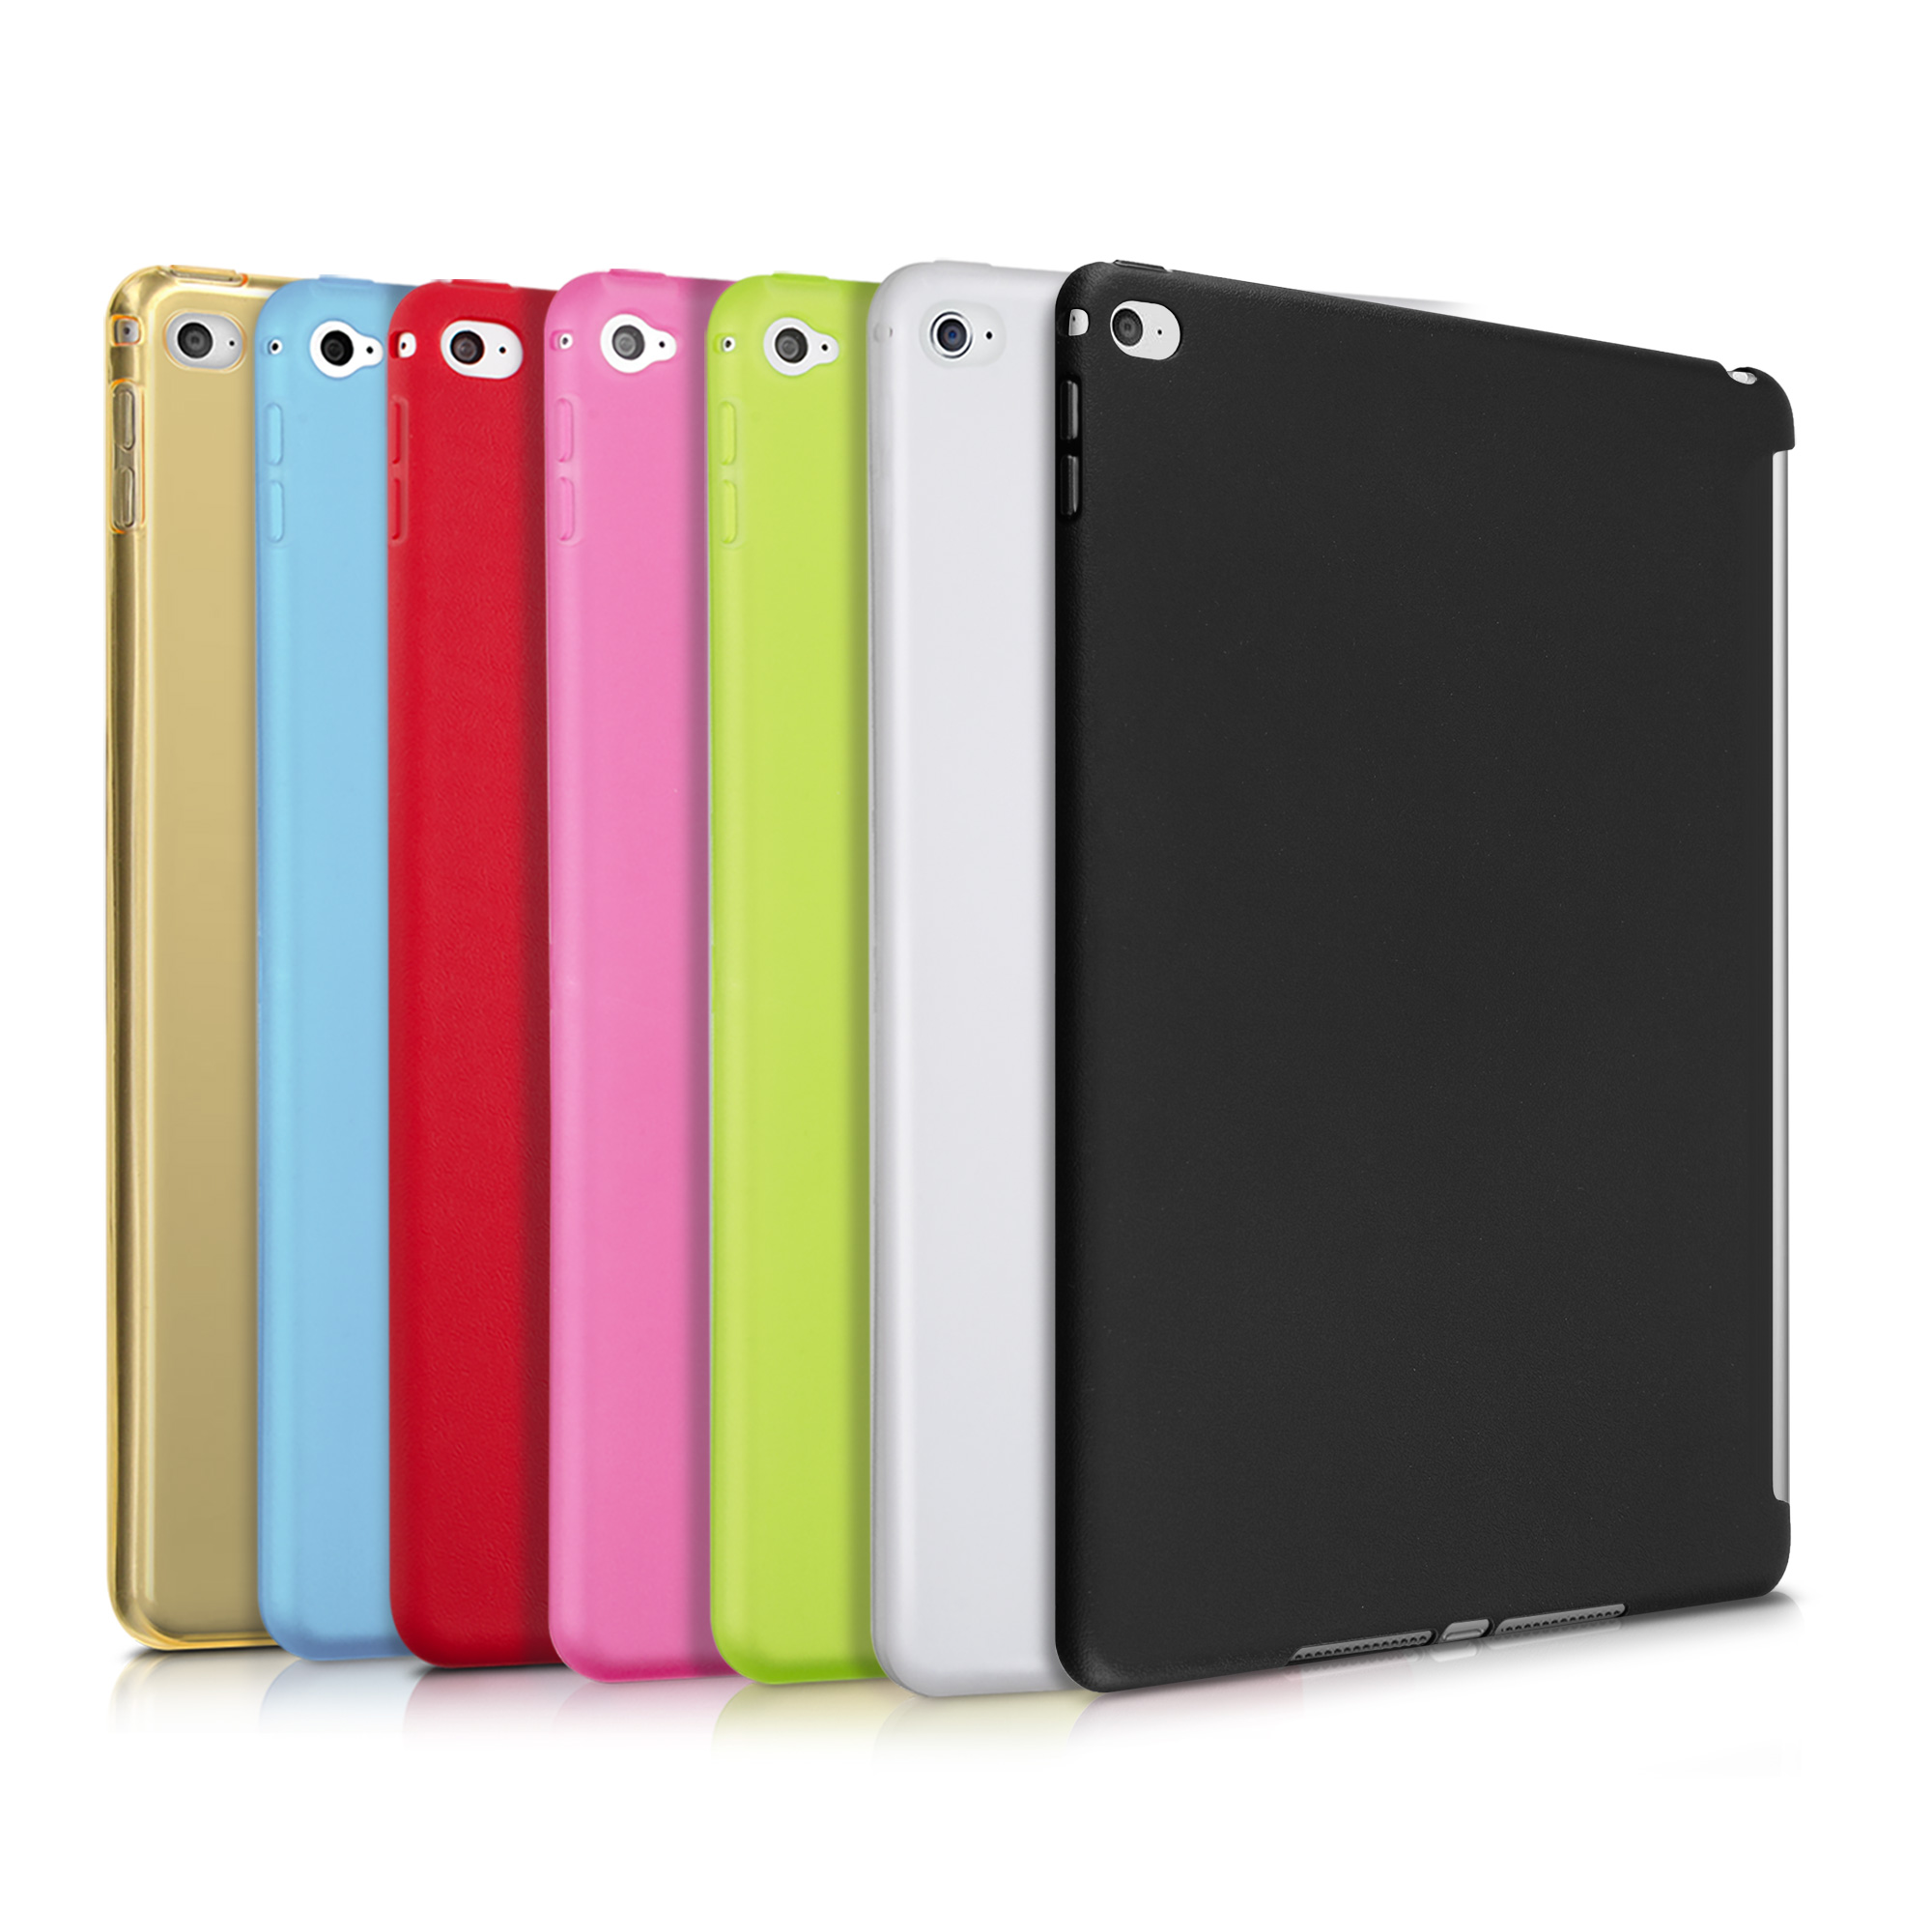 tpu case for apple ipad air 2 protective tablet cover ebay. Black Bedroom Furniture Sets. Home Design Ideas